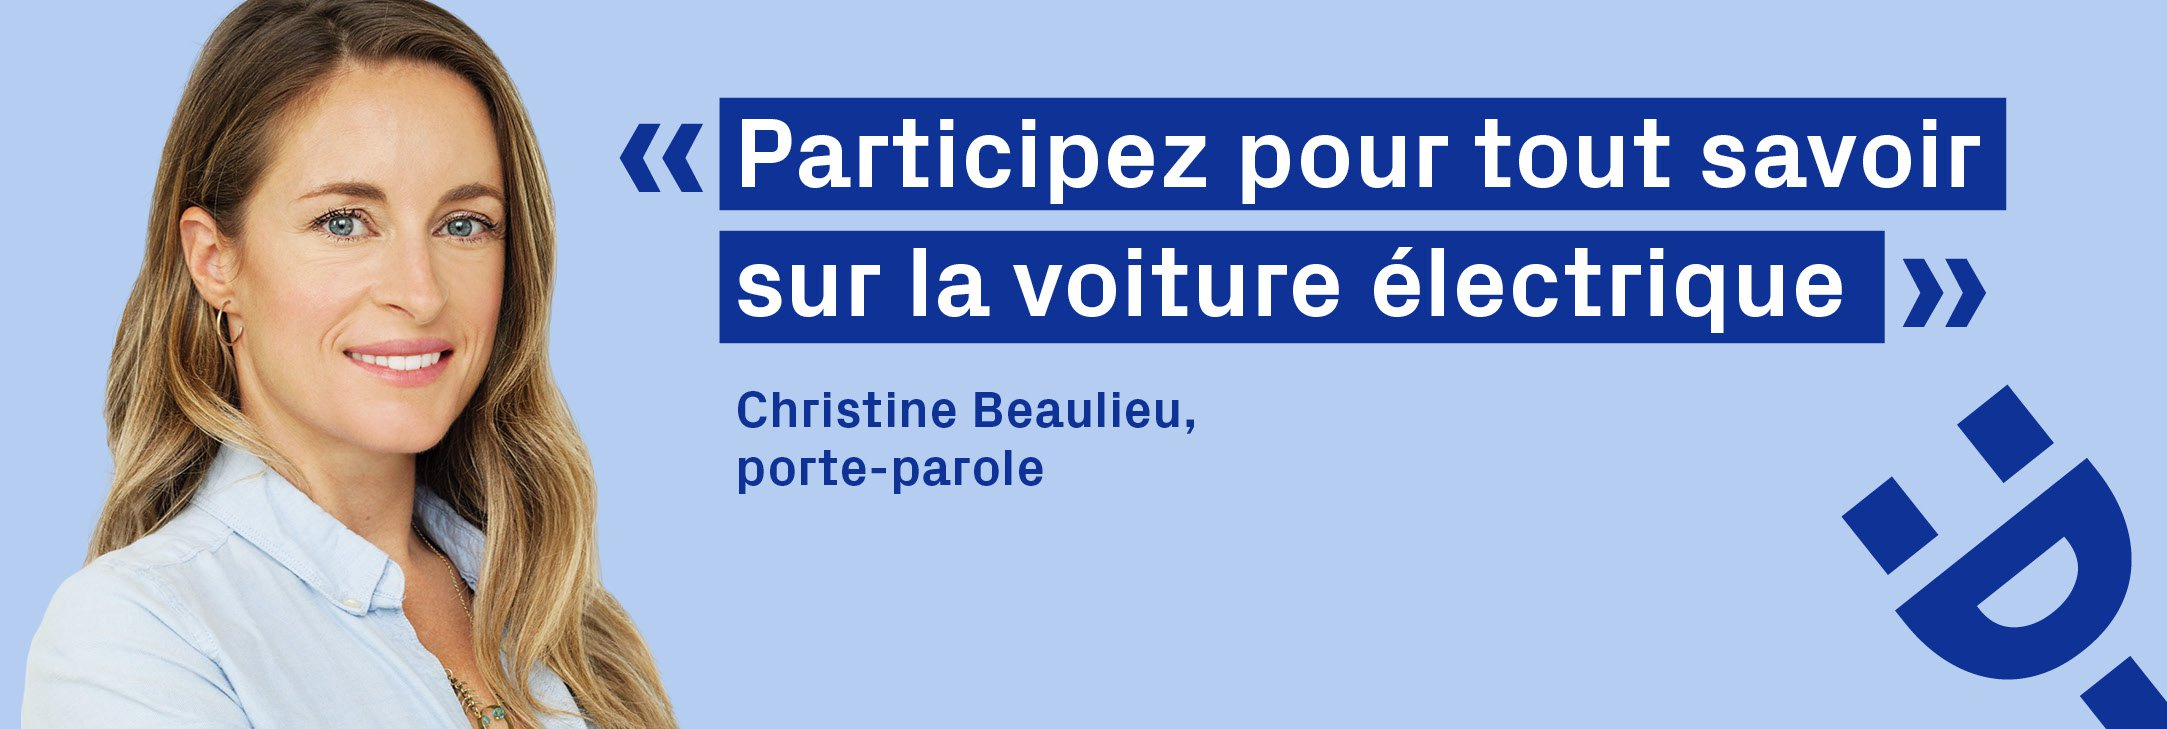 Christine_beaulieu_snve.jpg